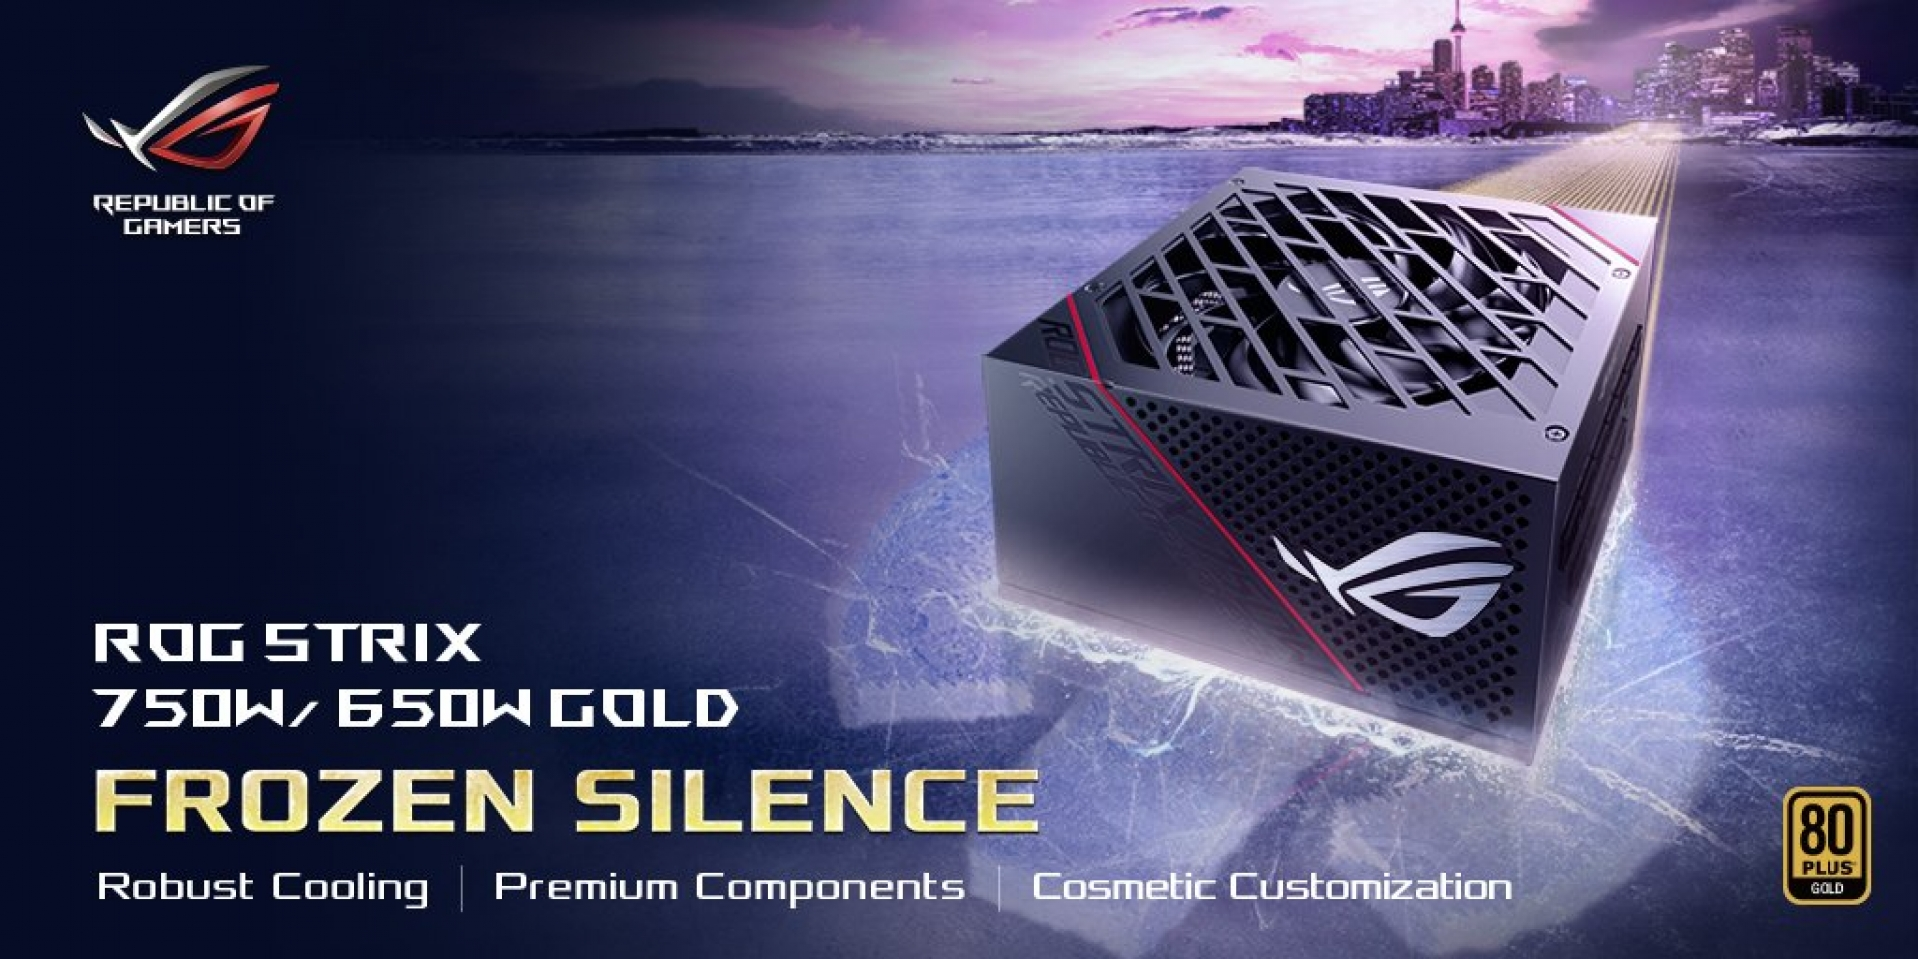 ASUS' ROG Strix series of PSUs are due to release soon - EVGA Forums